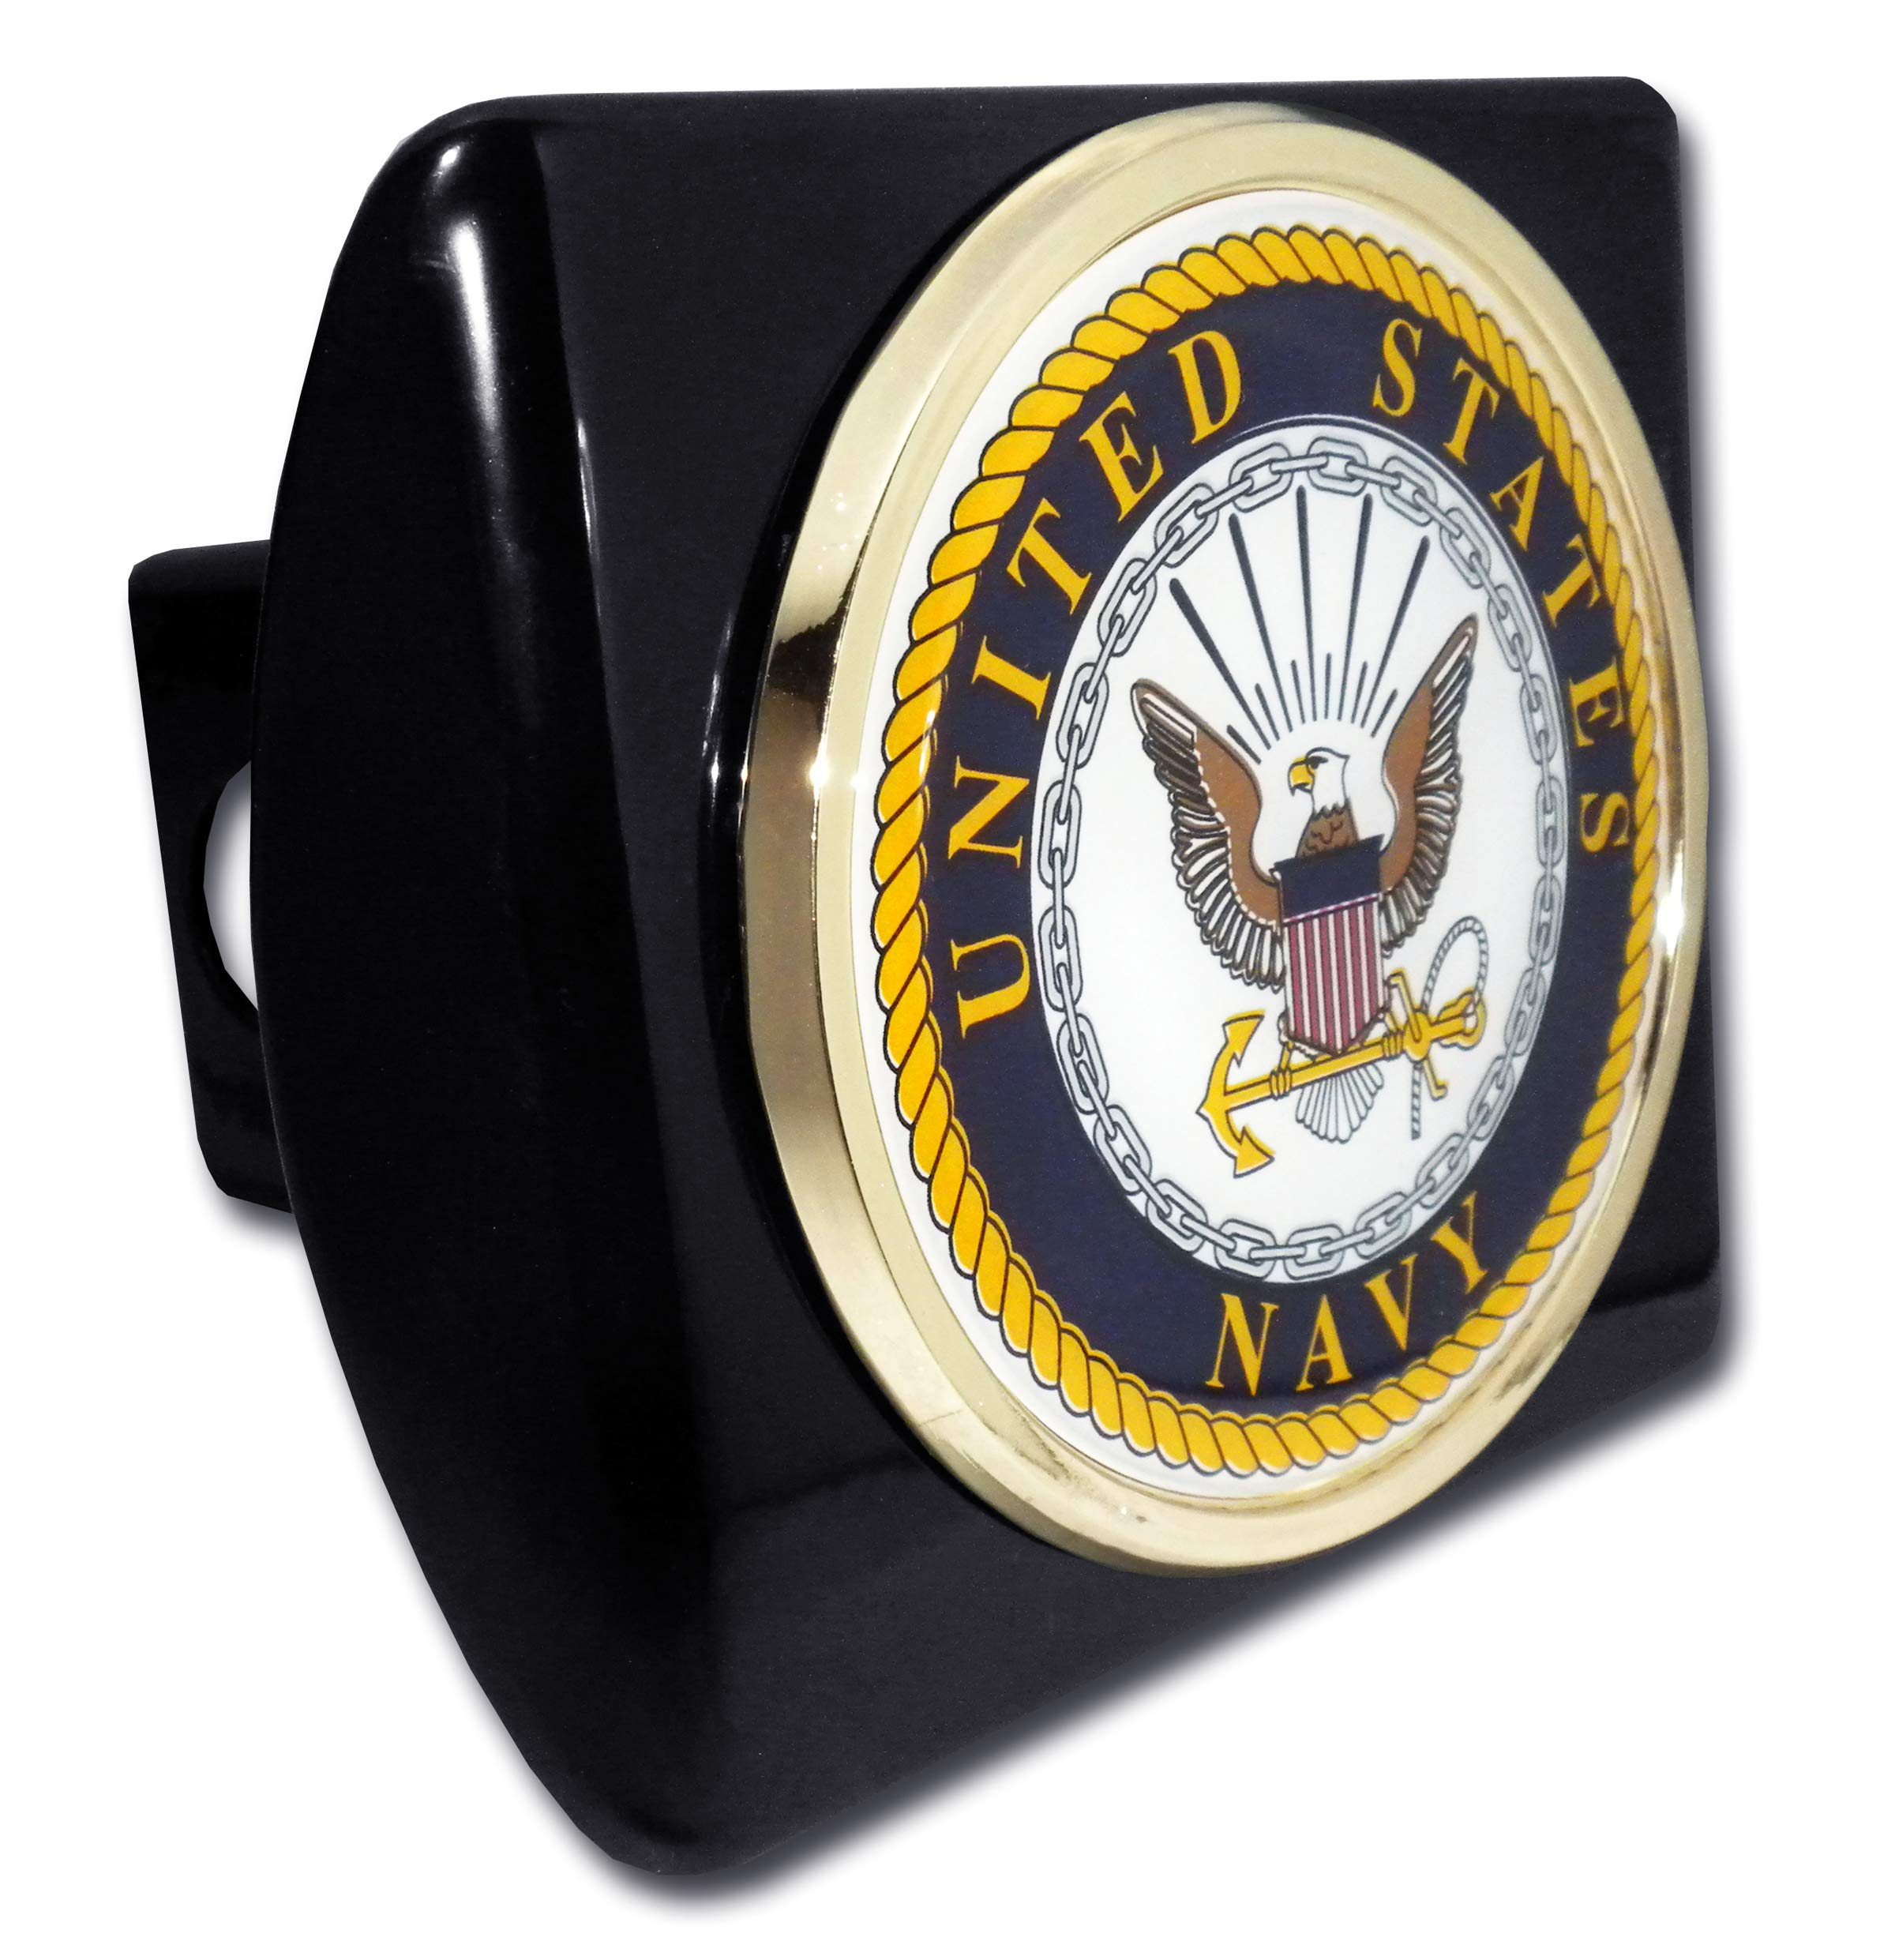 Elektroplate United States Navy Eagle Black Metal Hitch Cover by Elektroplate